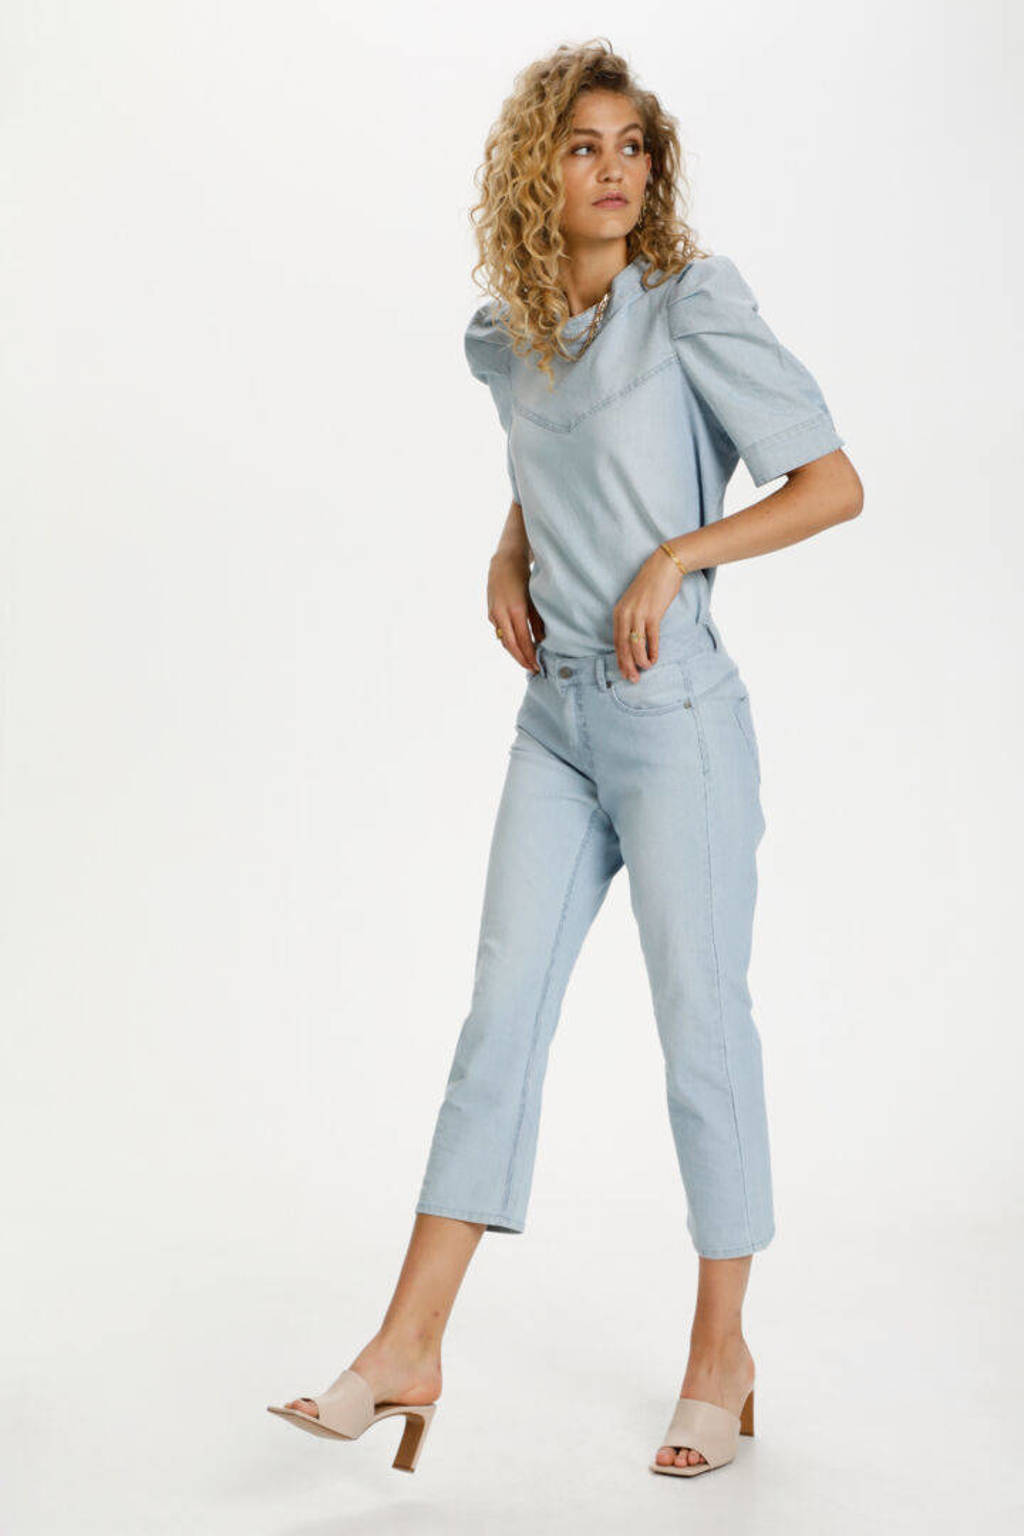 Denim Hunter cropped straight fit jeans DHVitus Cropped Custom 100045 light blue wash, 100045 Light Blue Wash